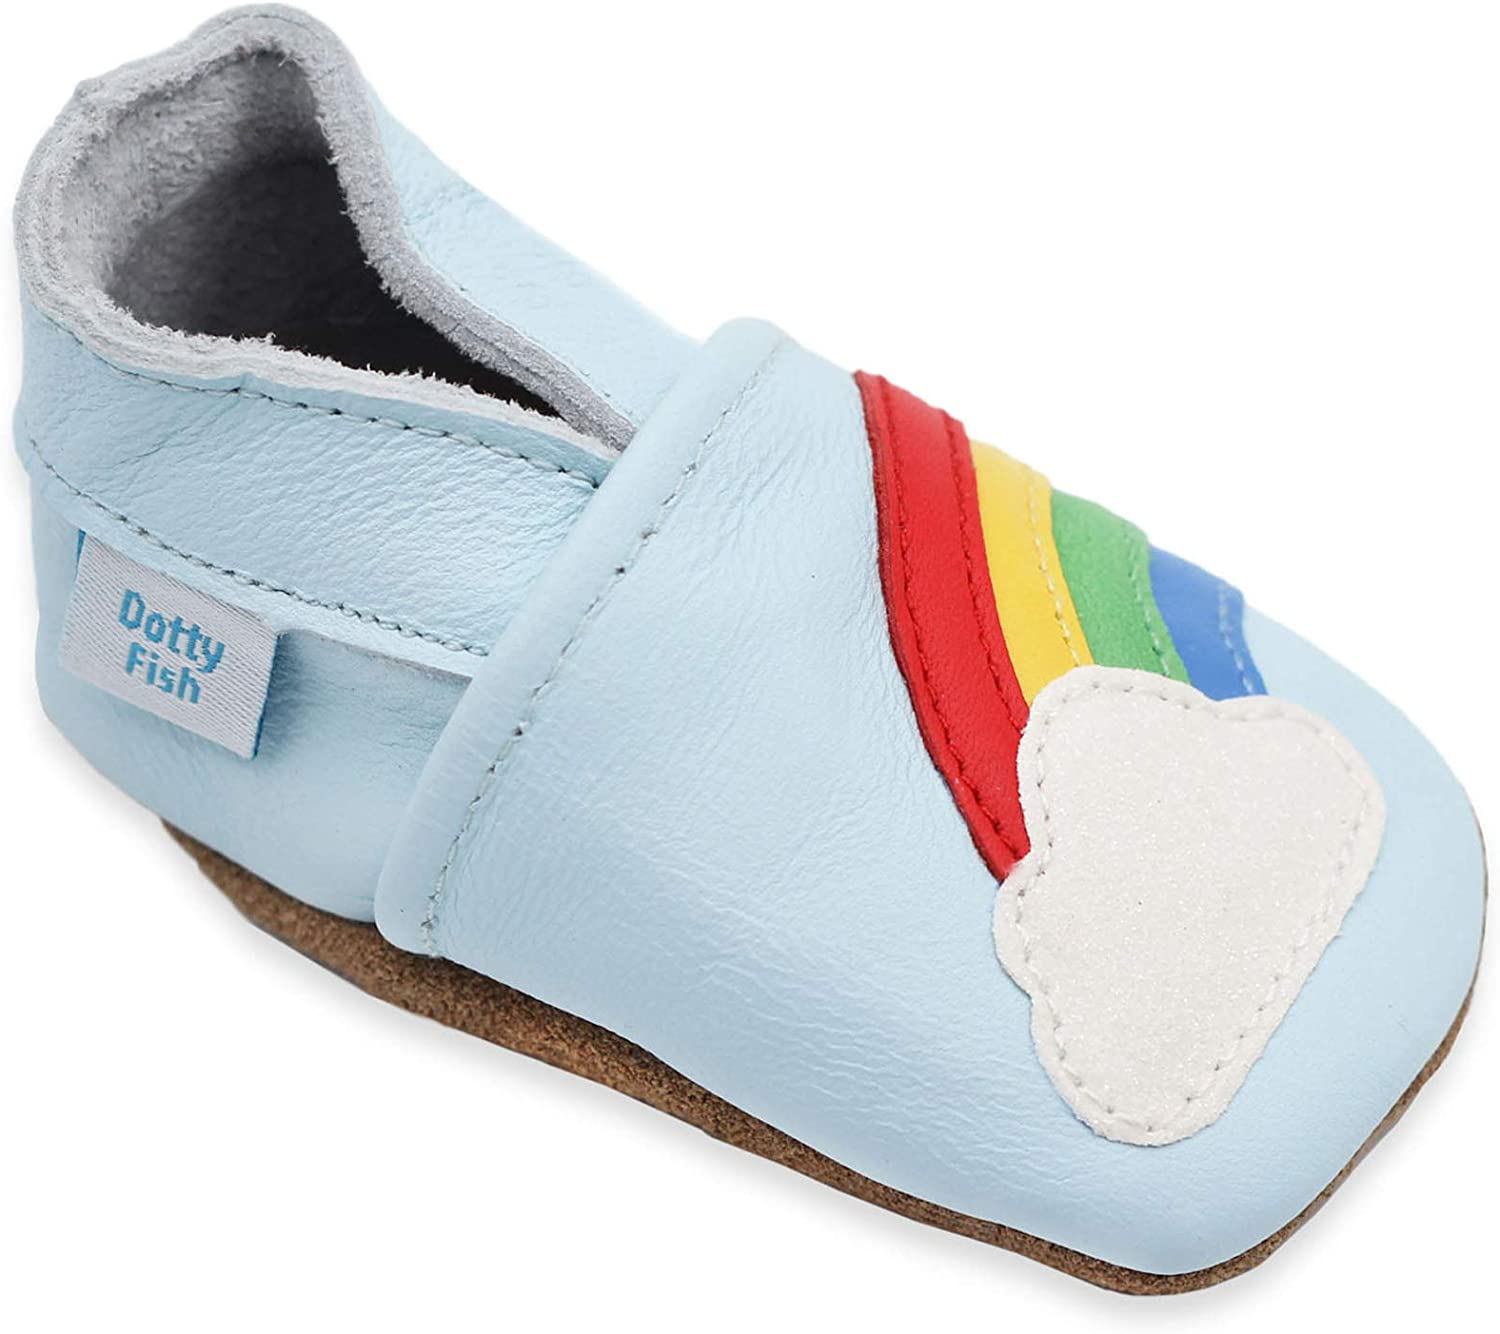 Dotty Fish Soft Leather Toddler Shoes Light Blue with Rainbow. Unisex